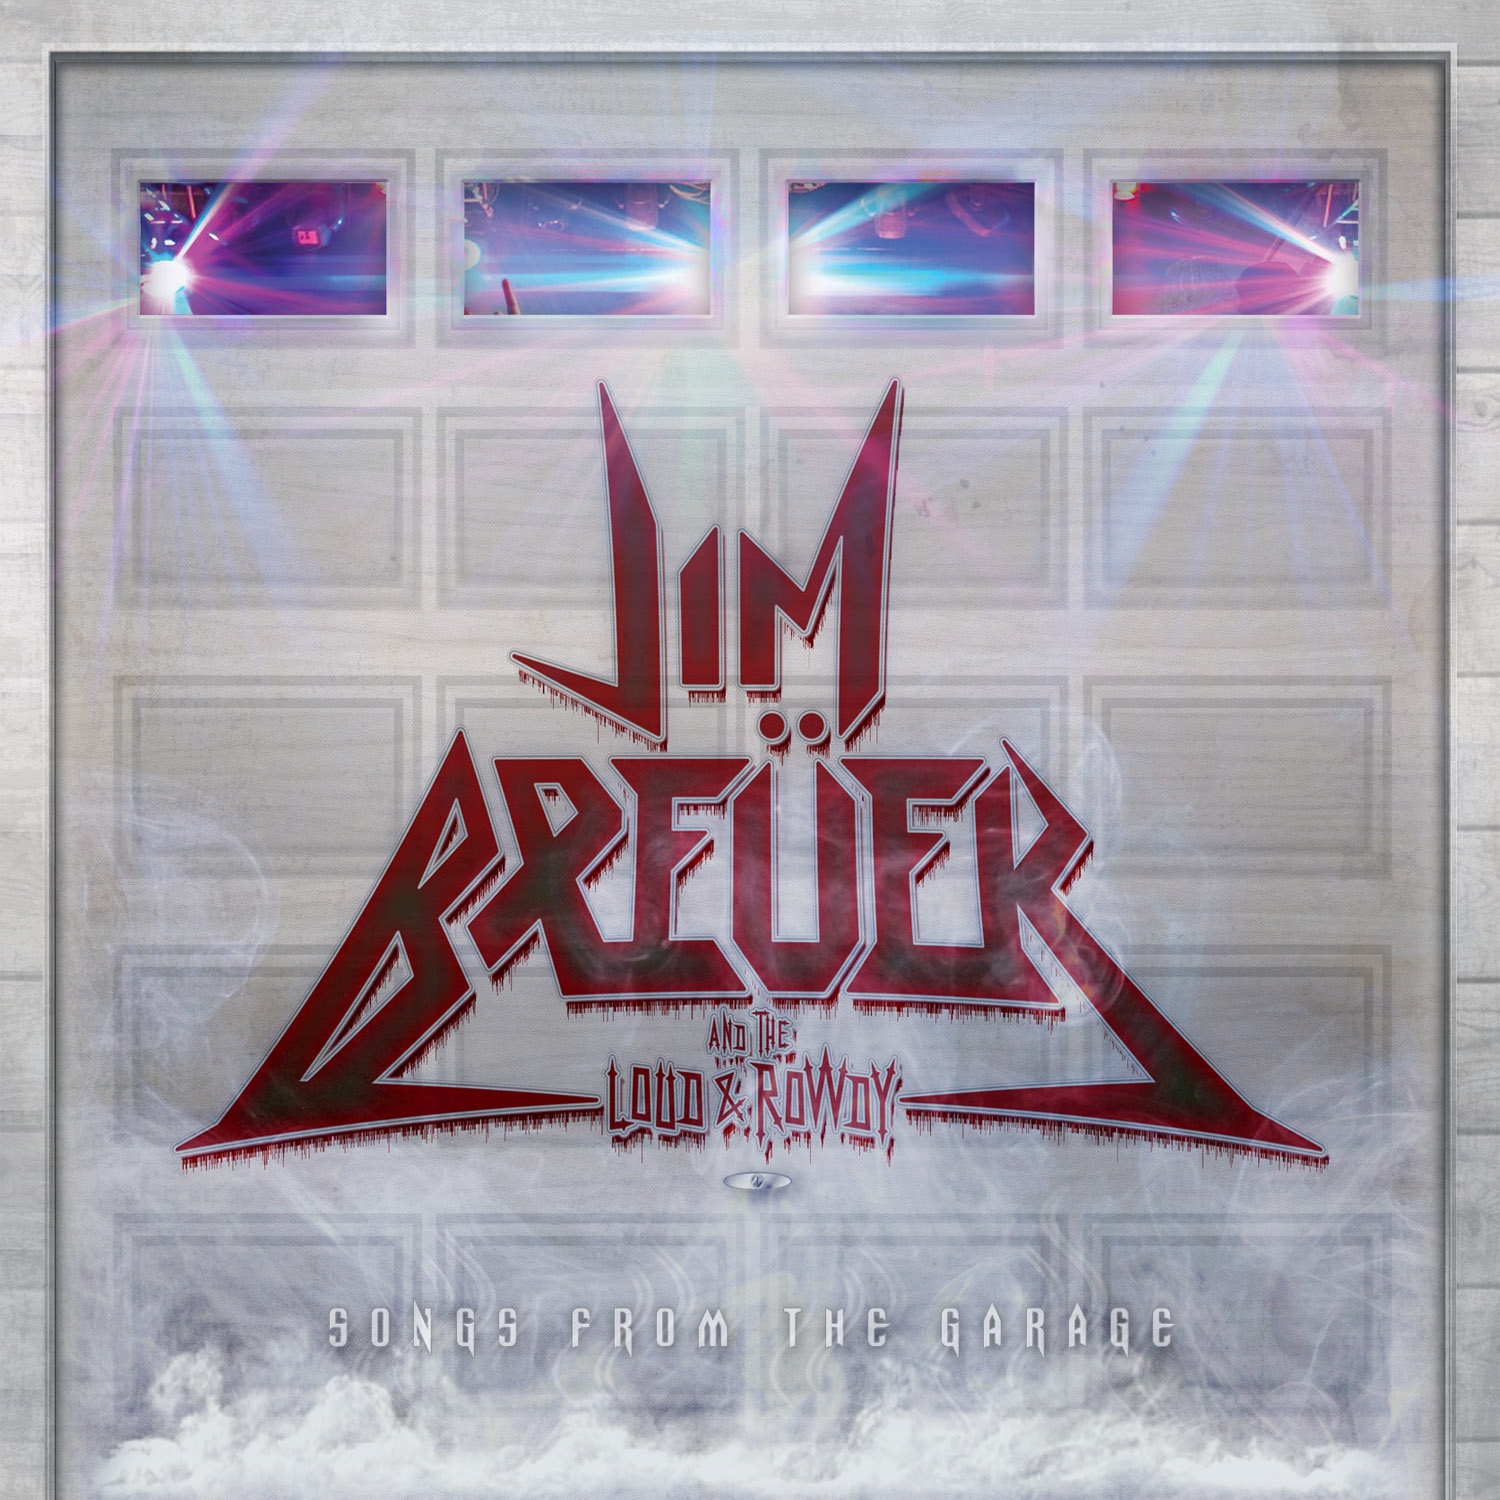 You are currently viewing JIM BREUER AND THE LOUD & ROWDY <br/> Songs From The Garage